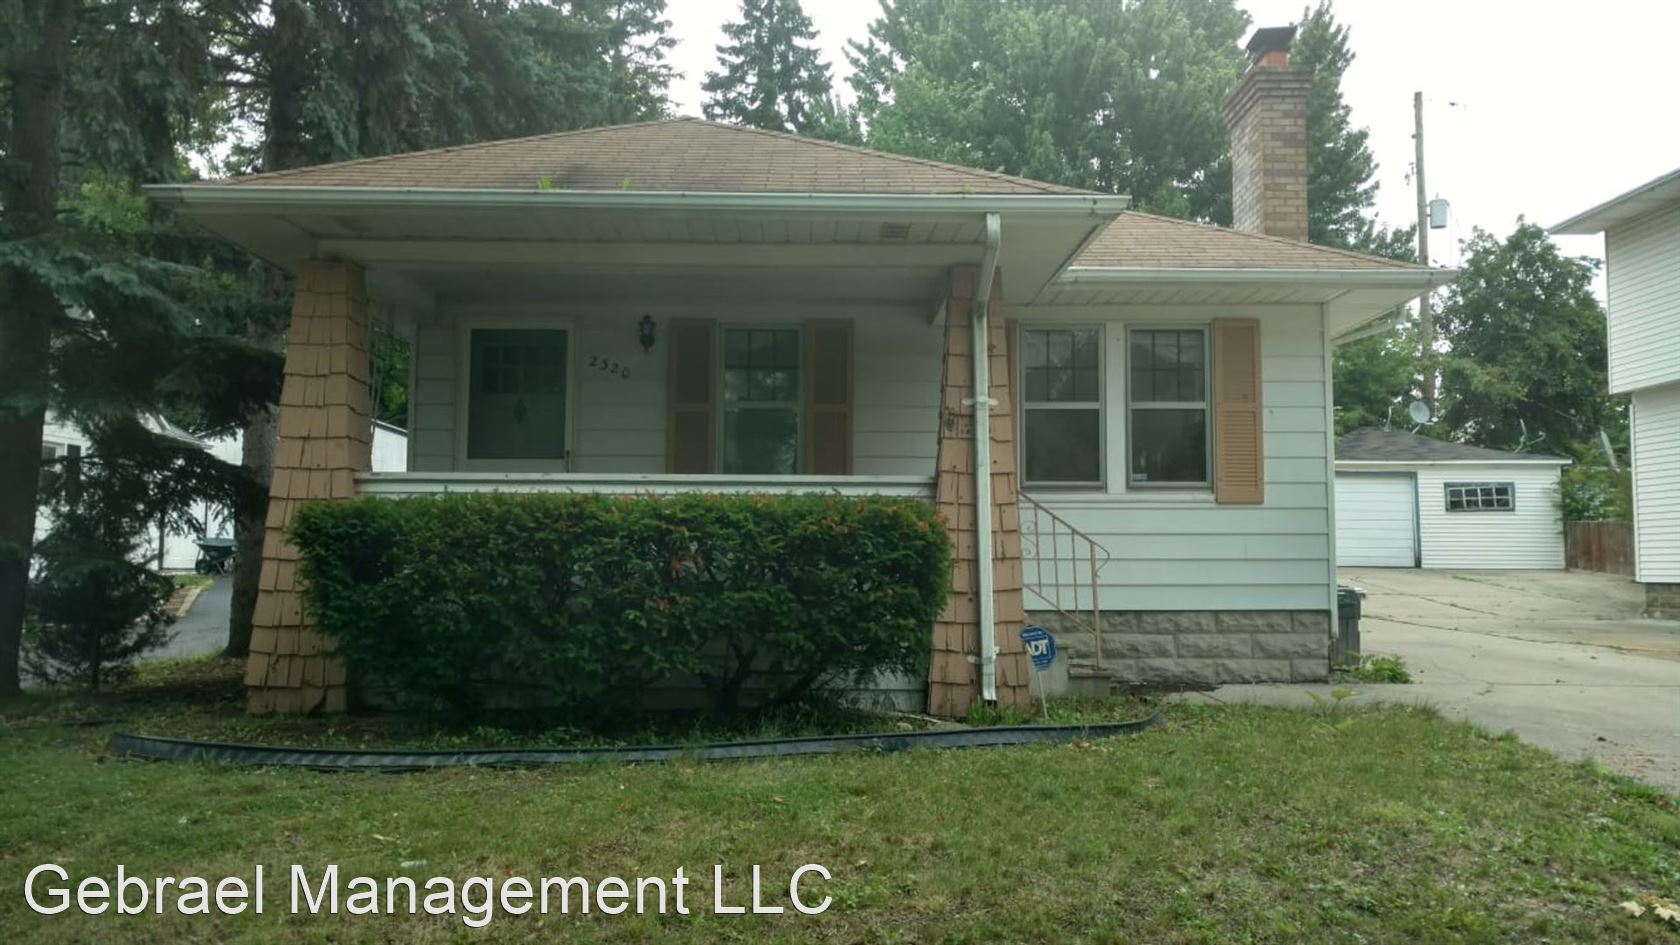 Flushing Rd and N Ballenger Hwy Area - Prop #289, Flint, MI - 800 USD/ month